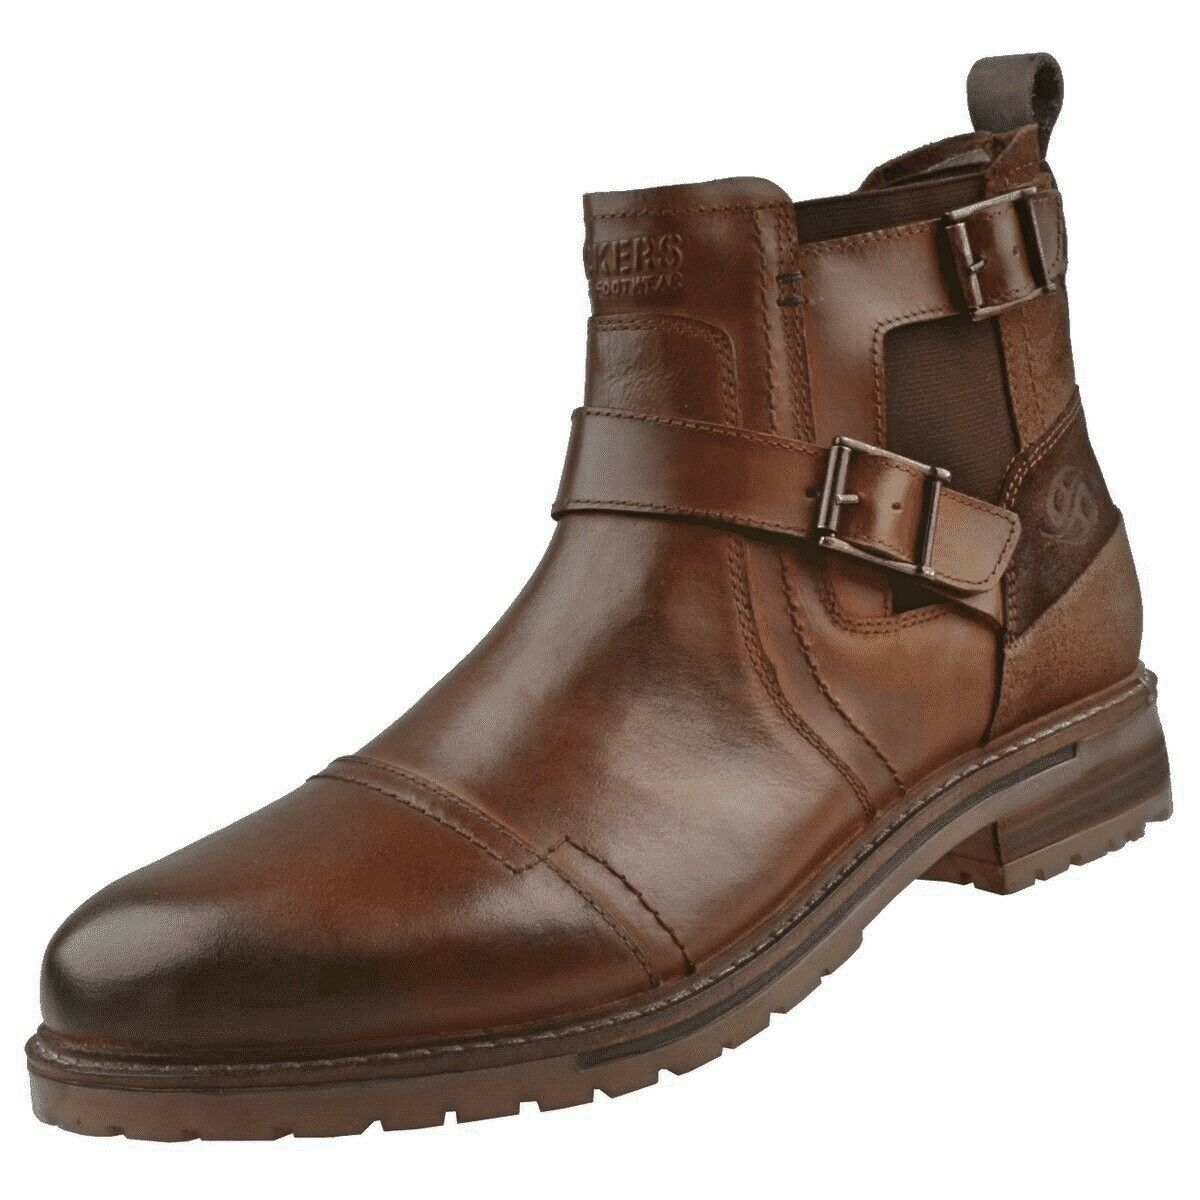 Dockers By Gerli 45LN004 Men's Buckles Boots Ankle Boot Boots Cognac